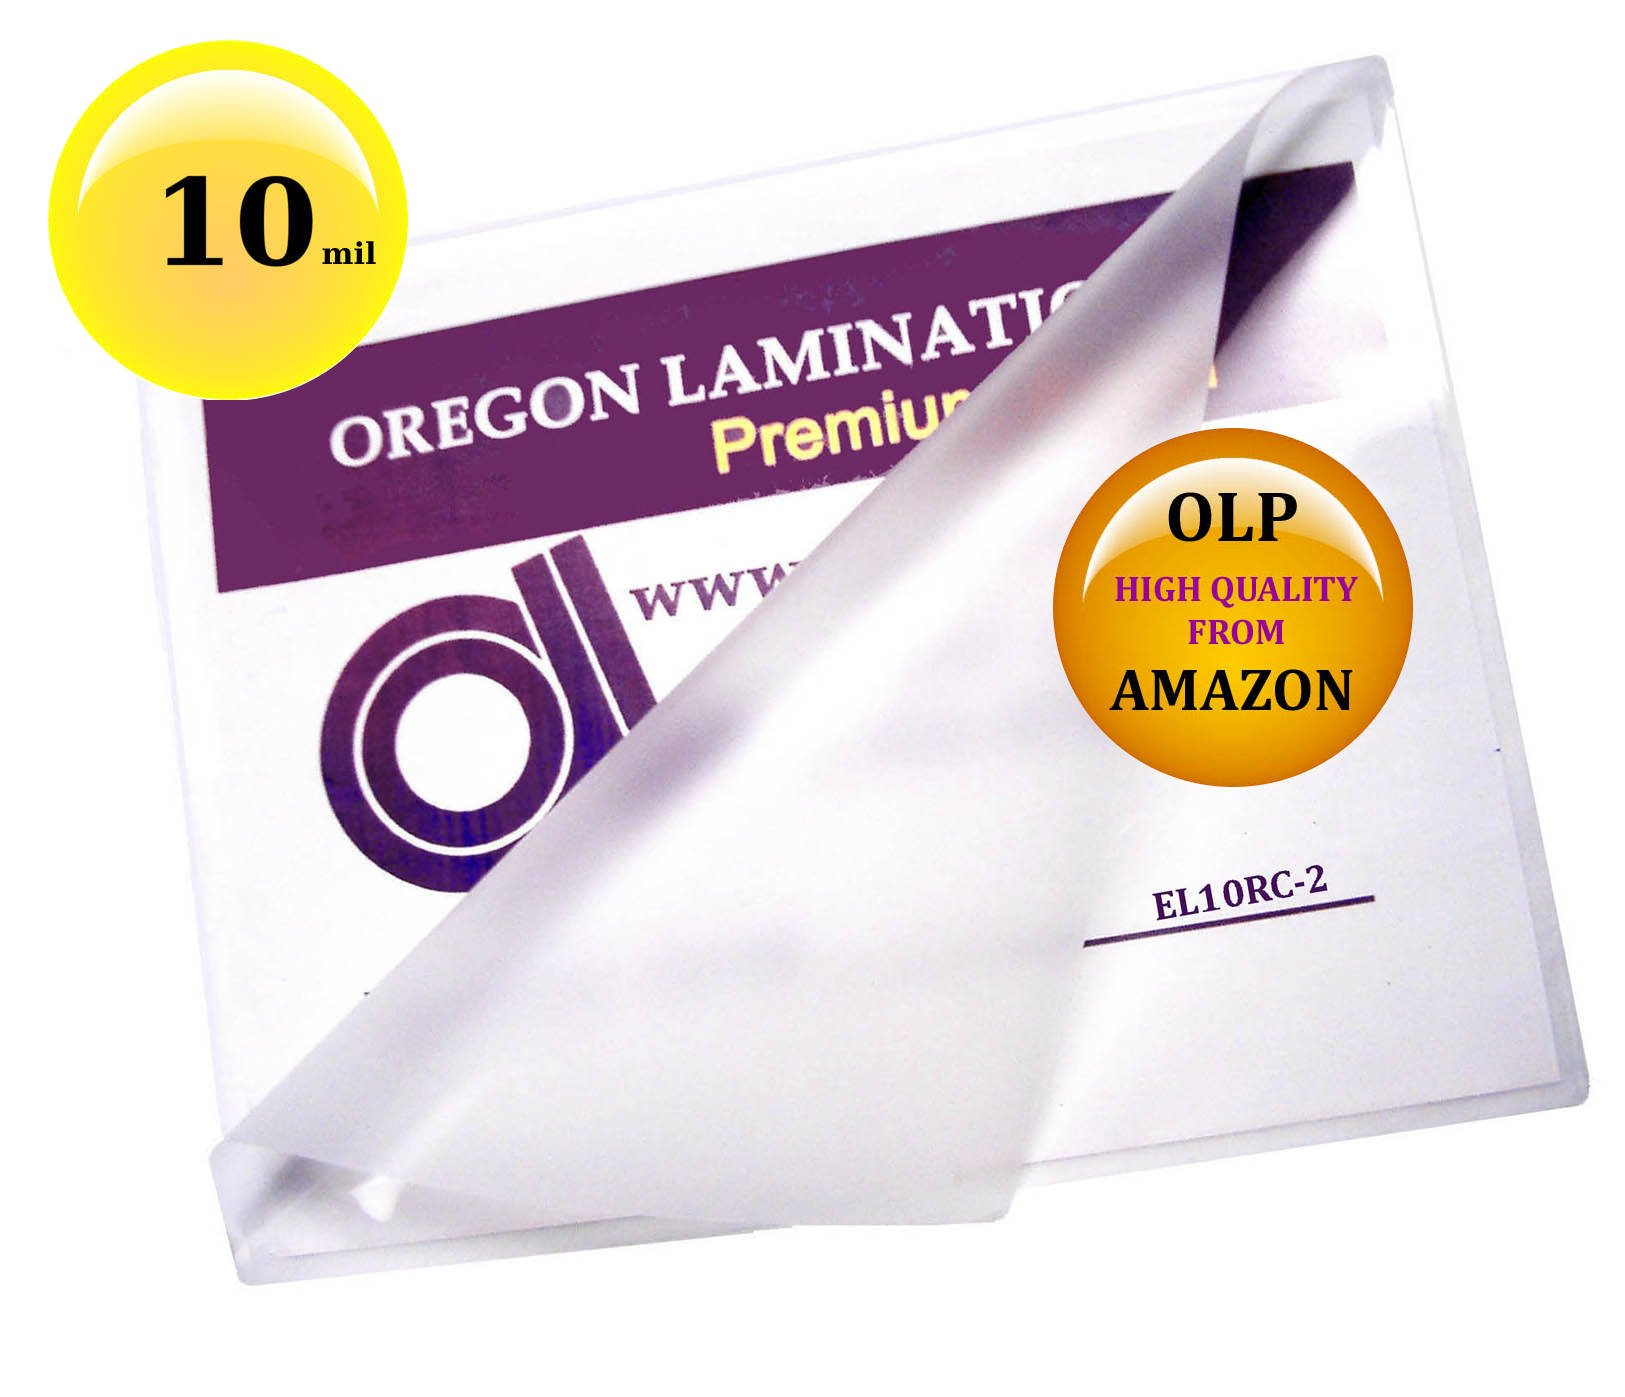 Qty 100 10 Mil Menu Laminating Pouches 12 x 18 Hot 12x18 by Oregon Lamination Premium